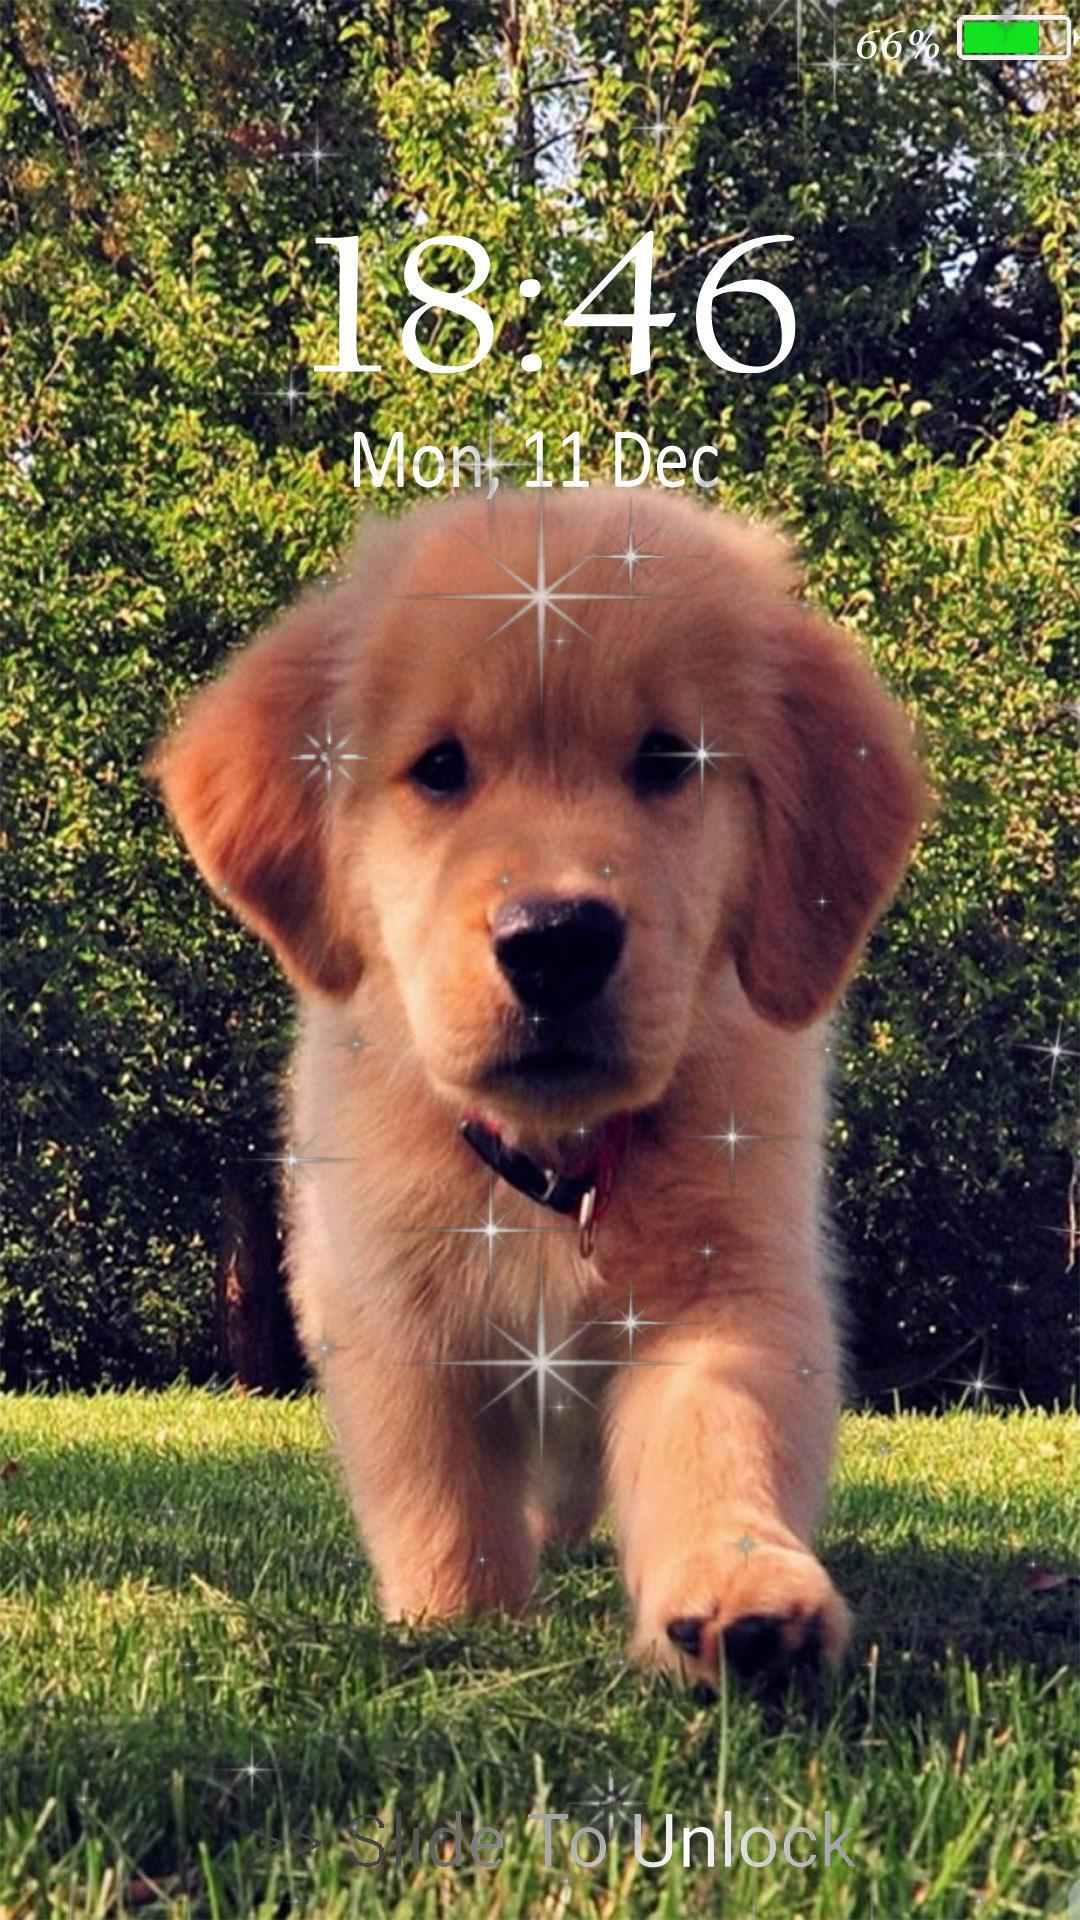 Cute Puppy Dog Live Wallpaper Lock Screen For Android Apk Download